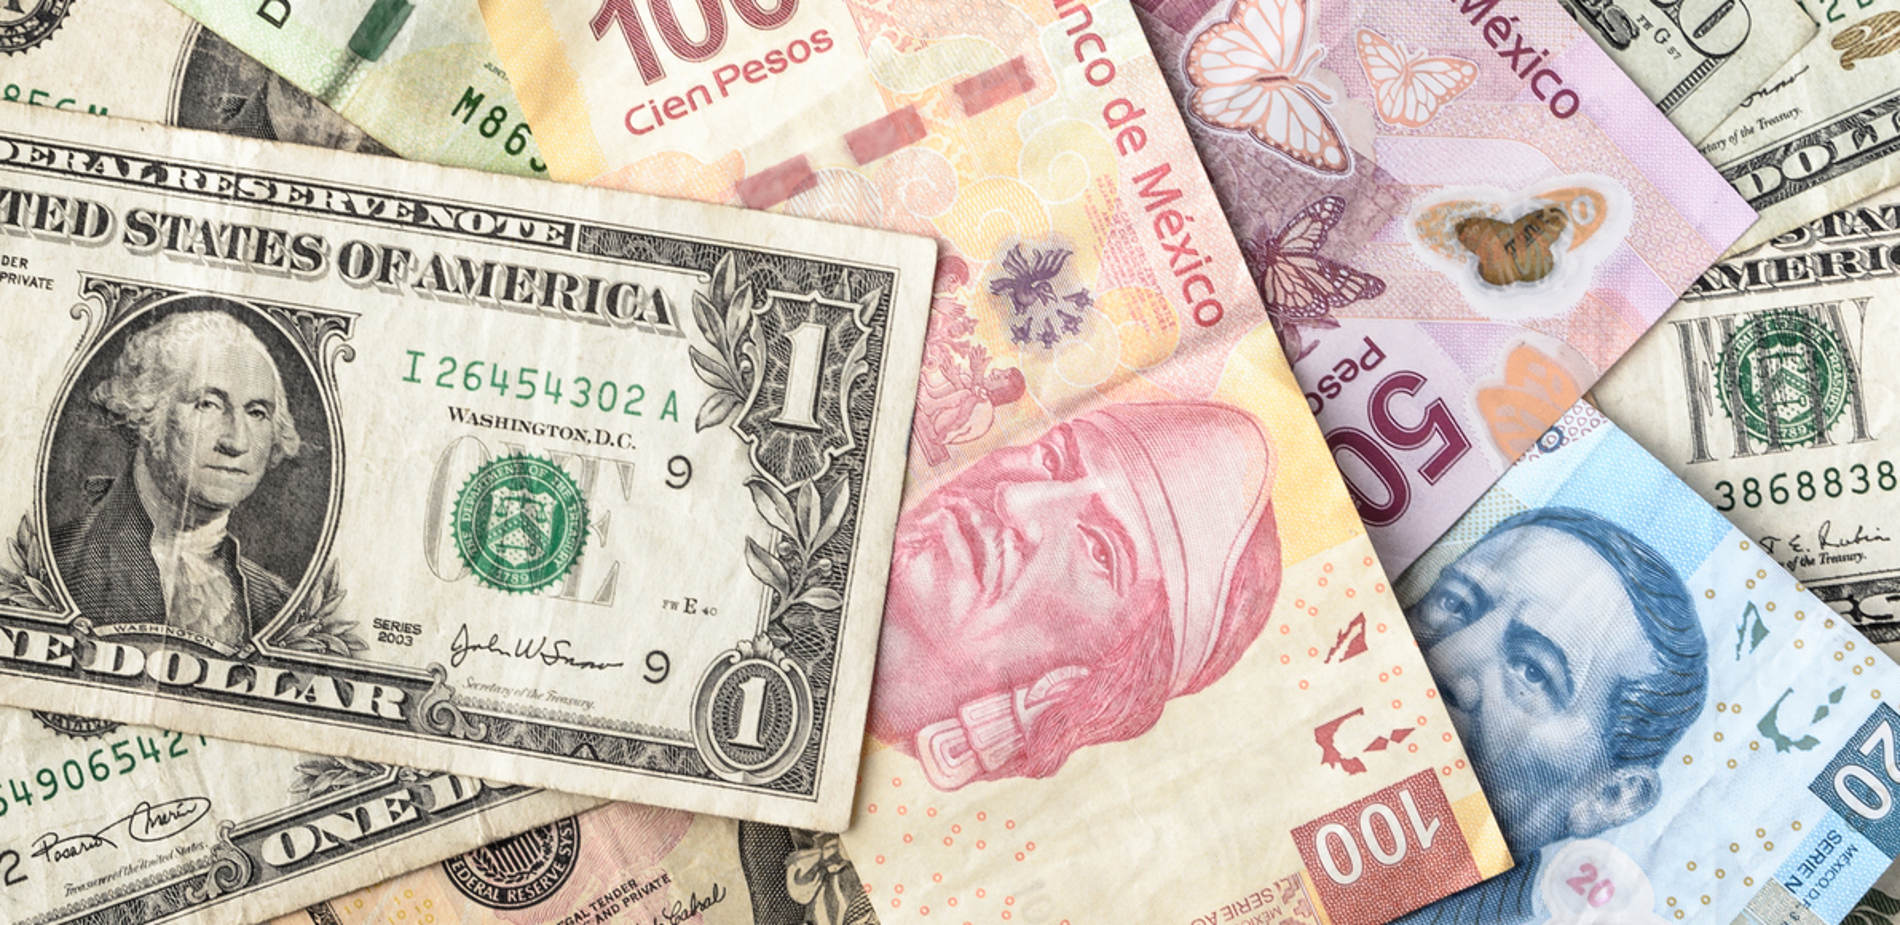 Cambio Libra Peso Usd To Mxn Forecast Trump Signals Dramatic Fate For The